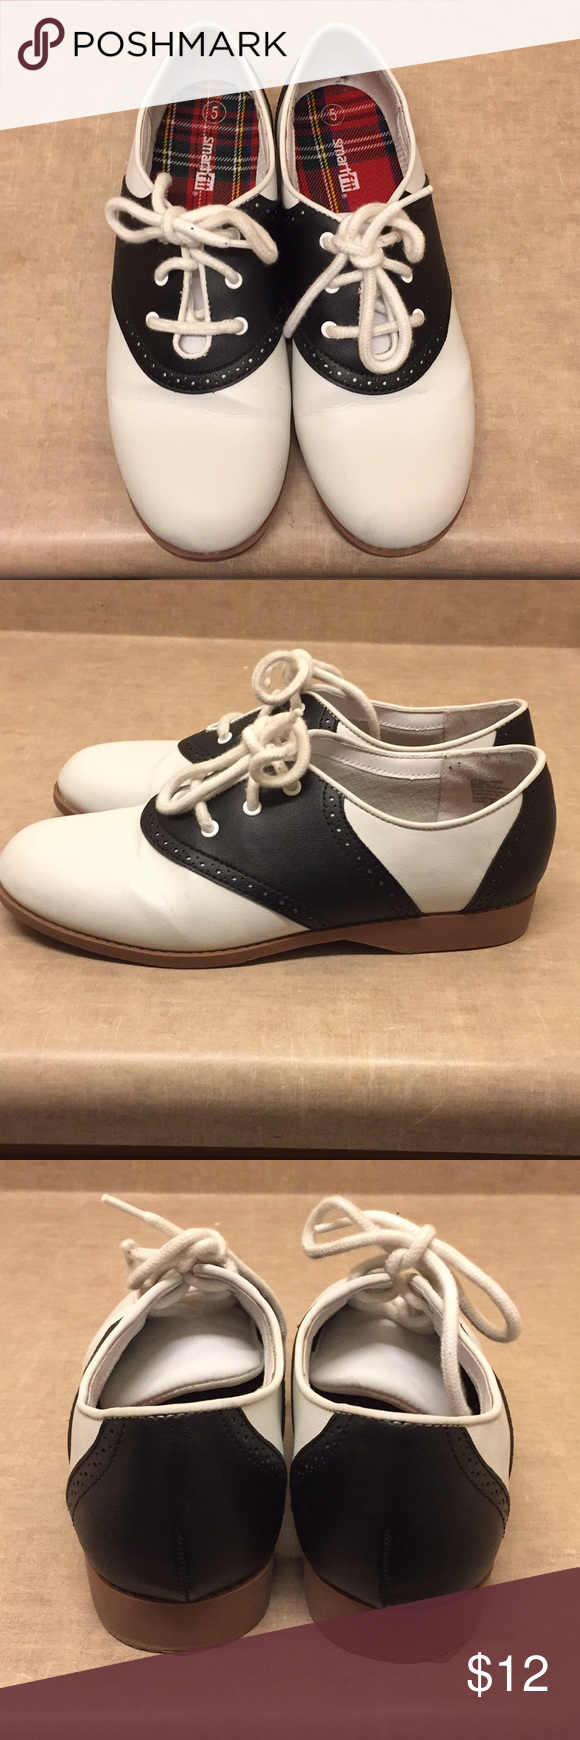 b9ef99333ea 50 s Saddle Oxford Smart Fit Shoes (Girls) Excellent used condition. Worn  once for a 50 s party Smart Fit Shoes